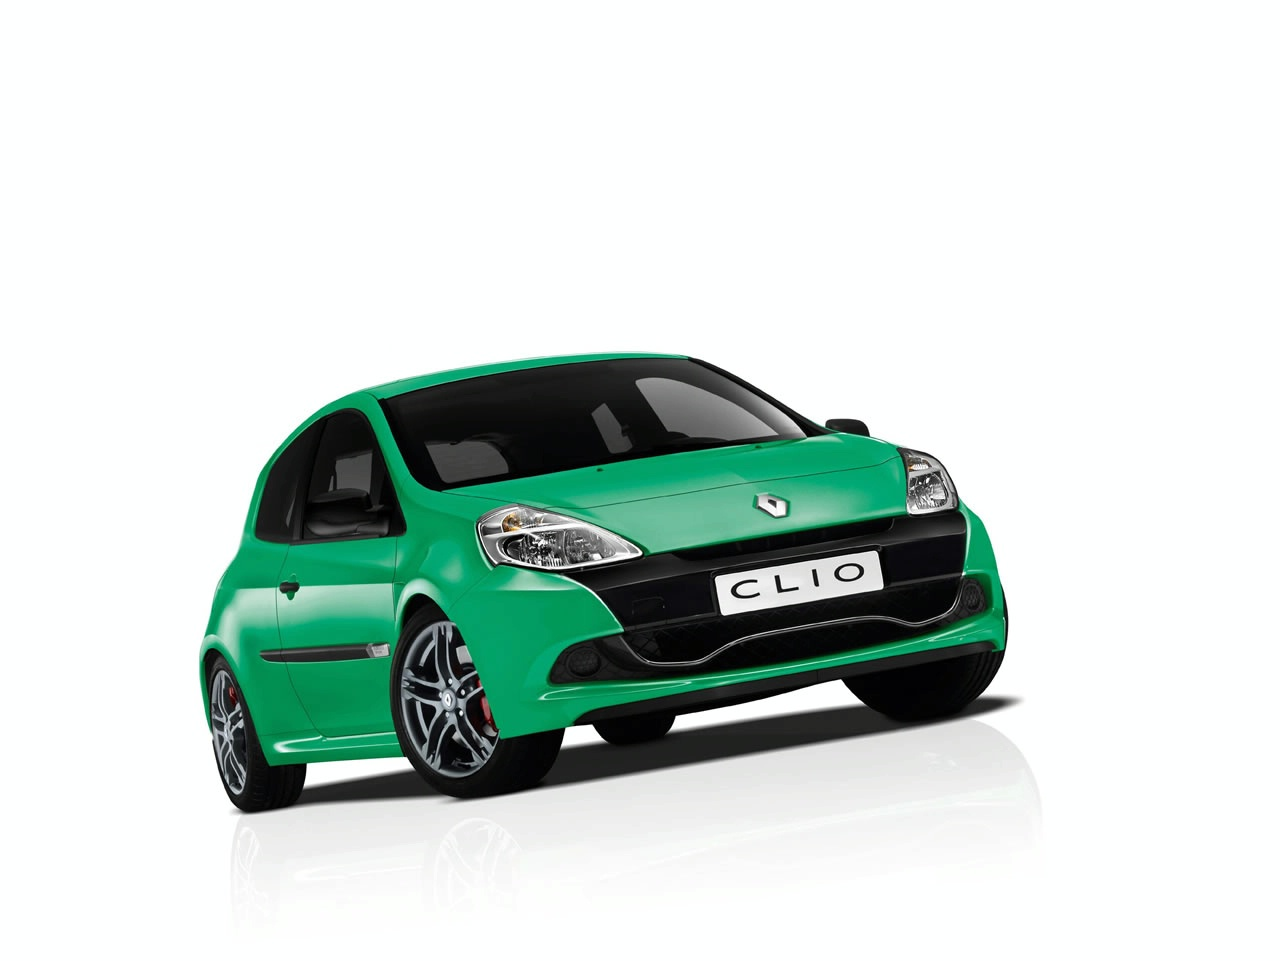 2009 Renault Clio RS 200 | Top Speed